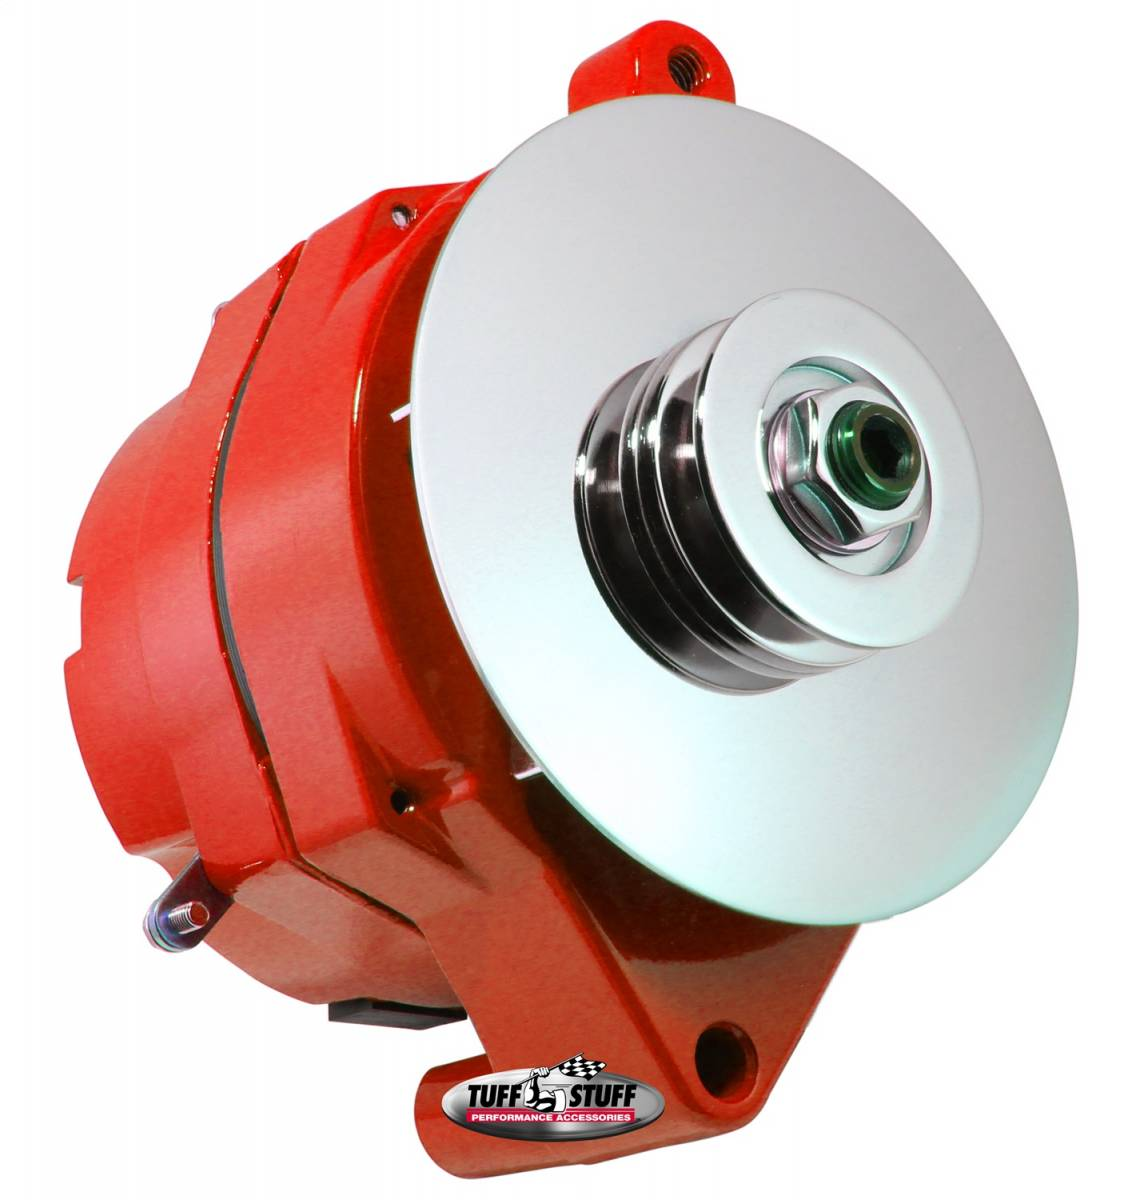 Tuff Stuff Performance - Alternator 100 AMP Smooth Back 1 Wire 1 Grove Pulley Red Powdercoat w/Chrome Accents 7068RFRED